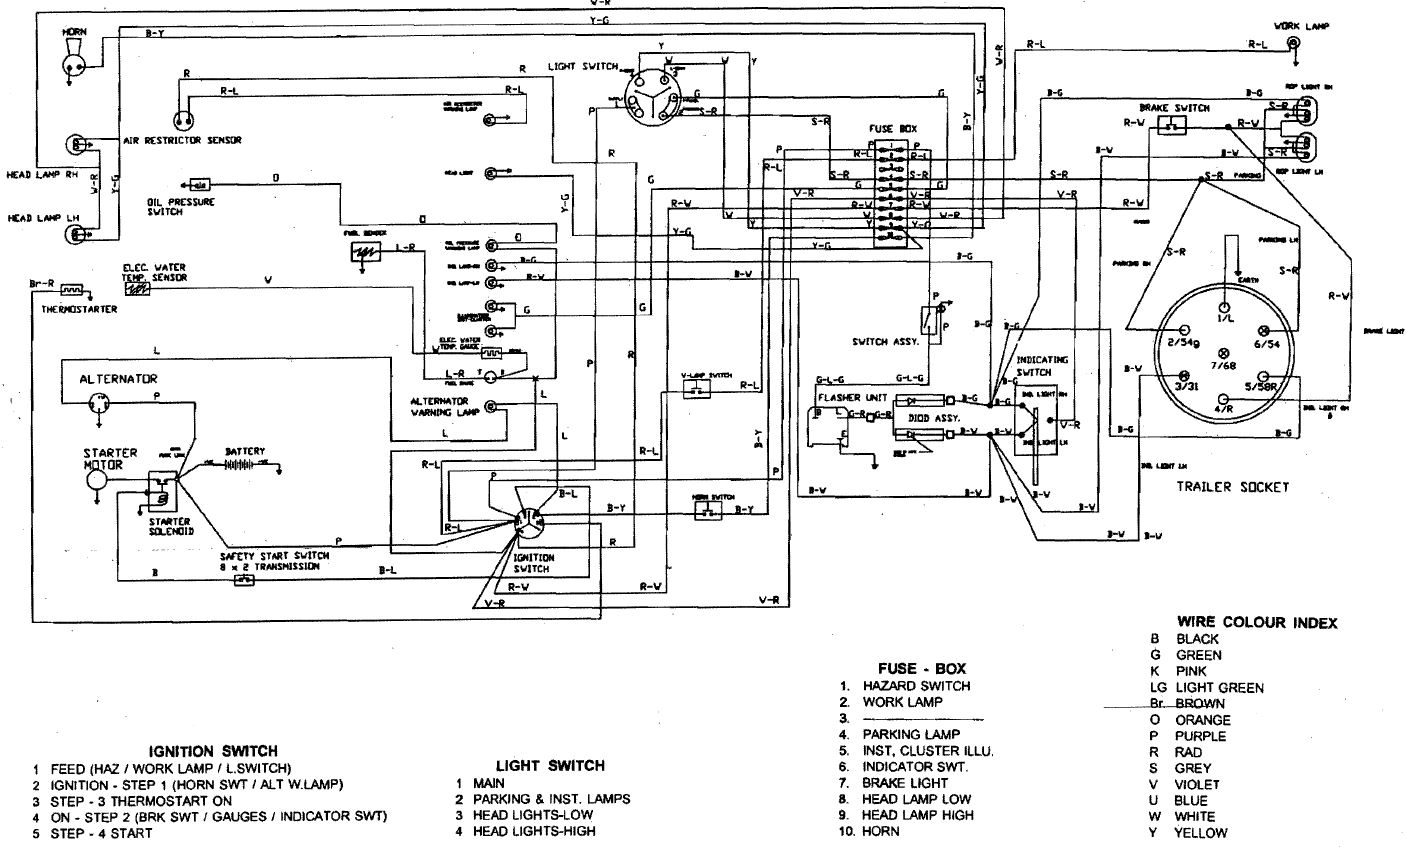 20158463319_b82d524c3d_o ignition switch wiring diagram PTO Switch Wiring Diagram for Massey Furgeson at reclaimingppi.co